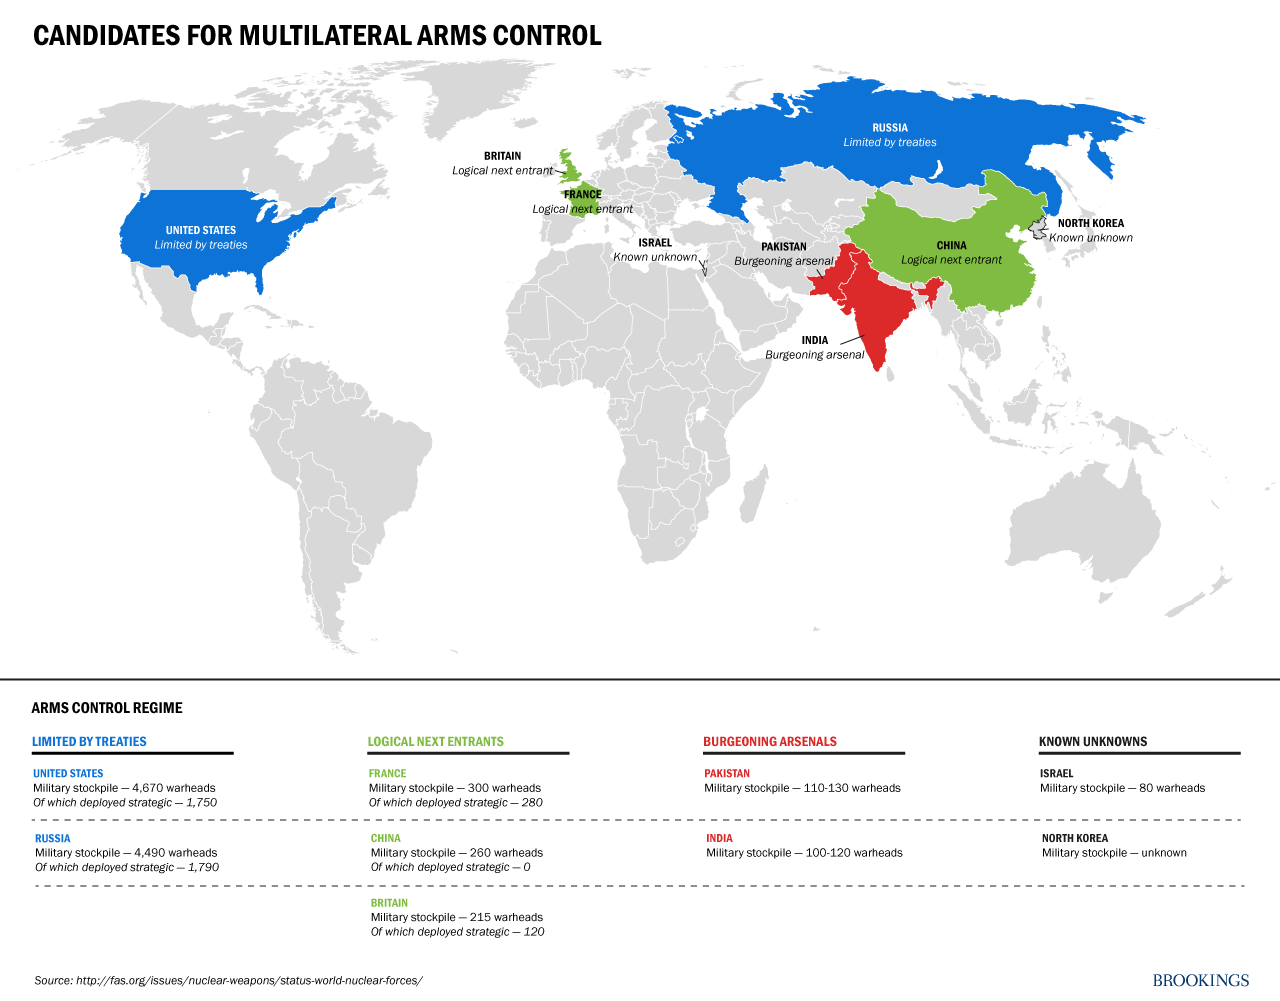 Candidates for Multilateral Arms Control. Of the countries known to possess nuclear weapons, the United States (which has 4,670 nuclear warheads, of which 1,750 are deployed) and Russia (which has 4,490 nuclear warheads, of which 1,790 are deployed) are limited by treaties. France, China, and Britain are the logical next entrants to the arms control regime. France has 300 warheads, of which 280 are deployed; China has 260 warheads, of which zero are deployed; and Britain has 215 warheads, of which 120 are deployed. India and Pakistan have 100 to 120 and 110 to 130 nuclear warheads, respectively, and are continuing to build their arsenals. Israel and North Korea are also thought to possess nuclear weapons. Israel's arsenal has been estimated at 80 warheads. There is little concrete information on North Korea's arsenal, but some experts have said it may possess 10 to 16 weapons.